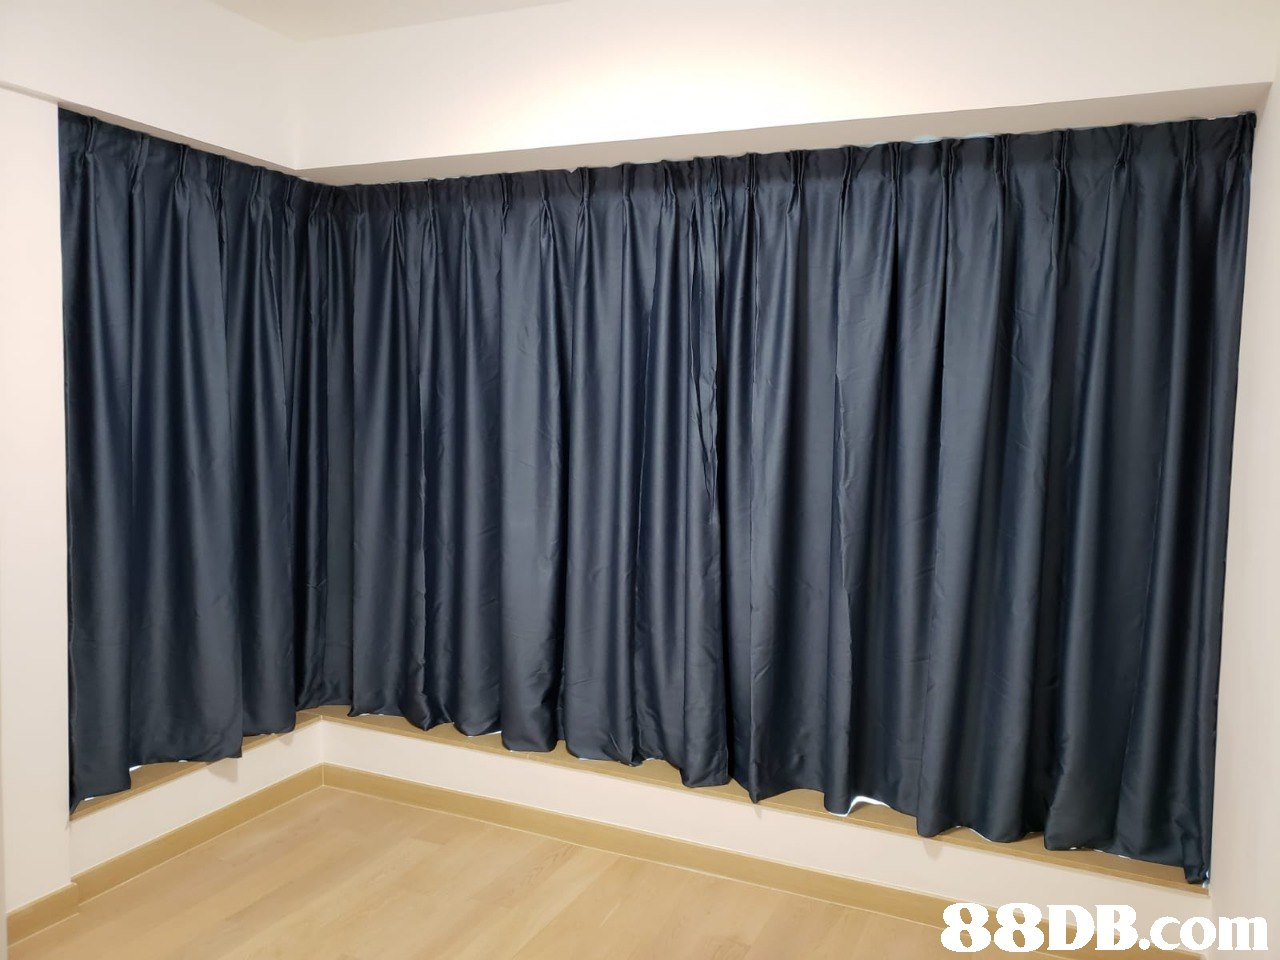 Curtain,Window treatment,Interior design,Window covering,Textile